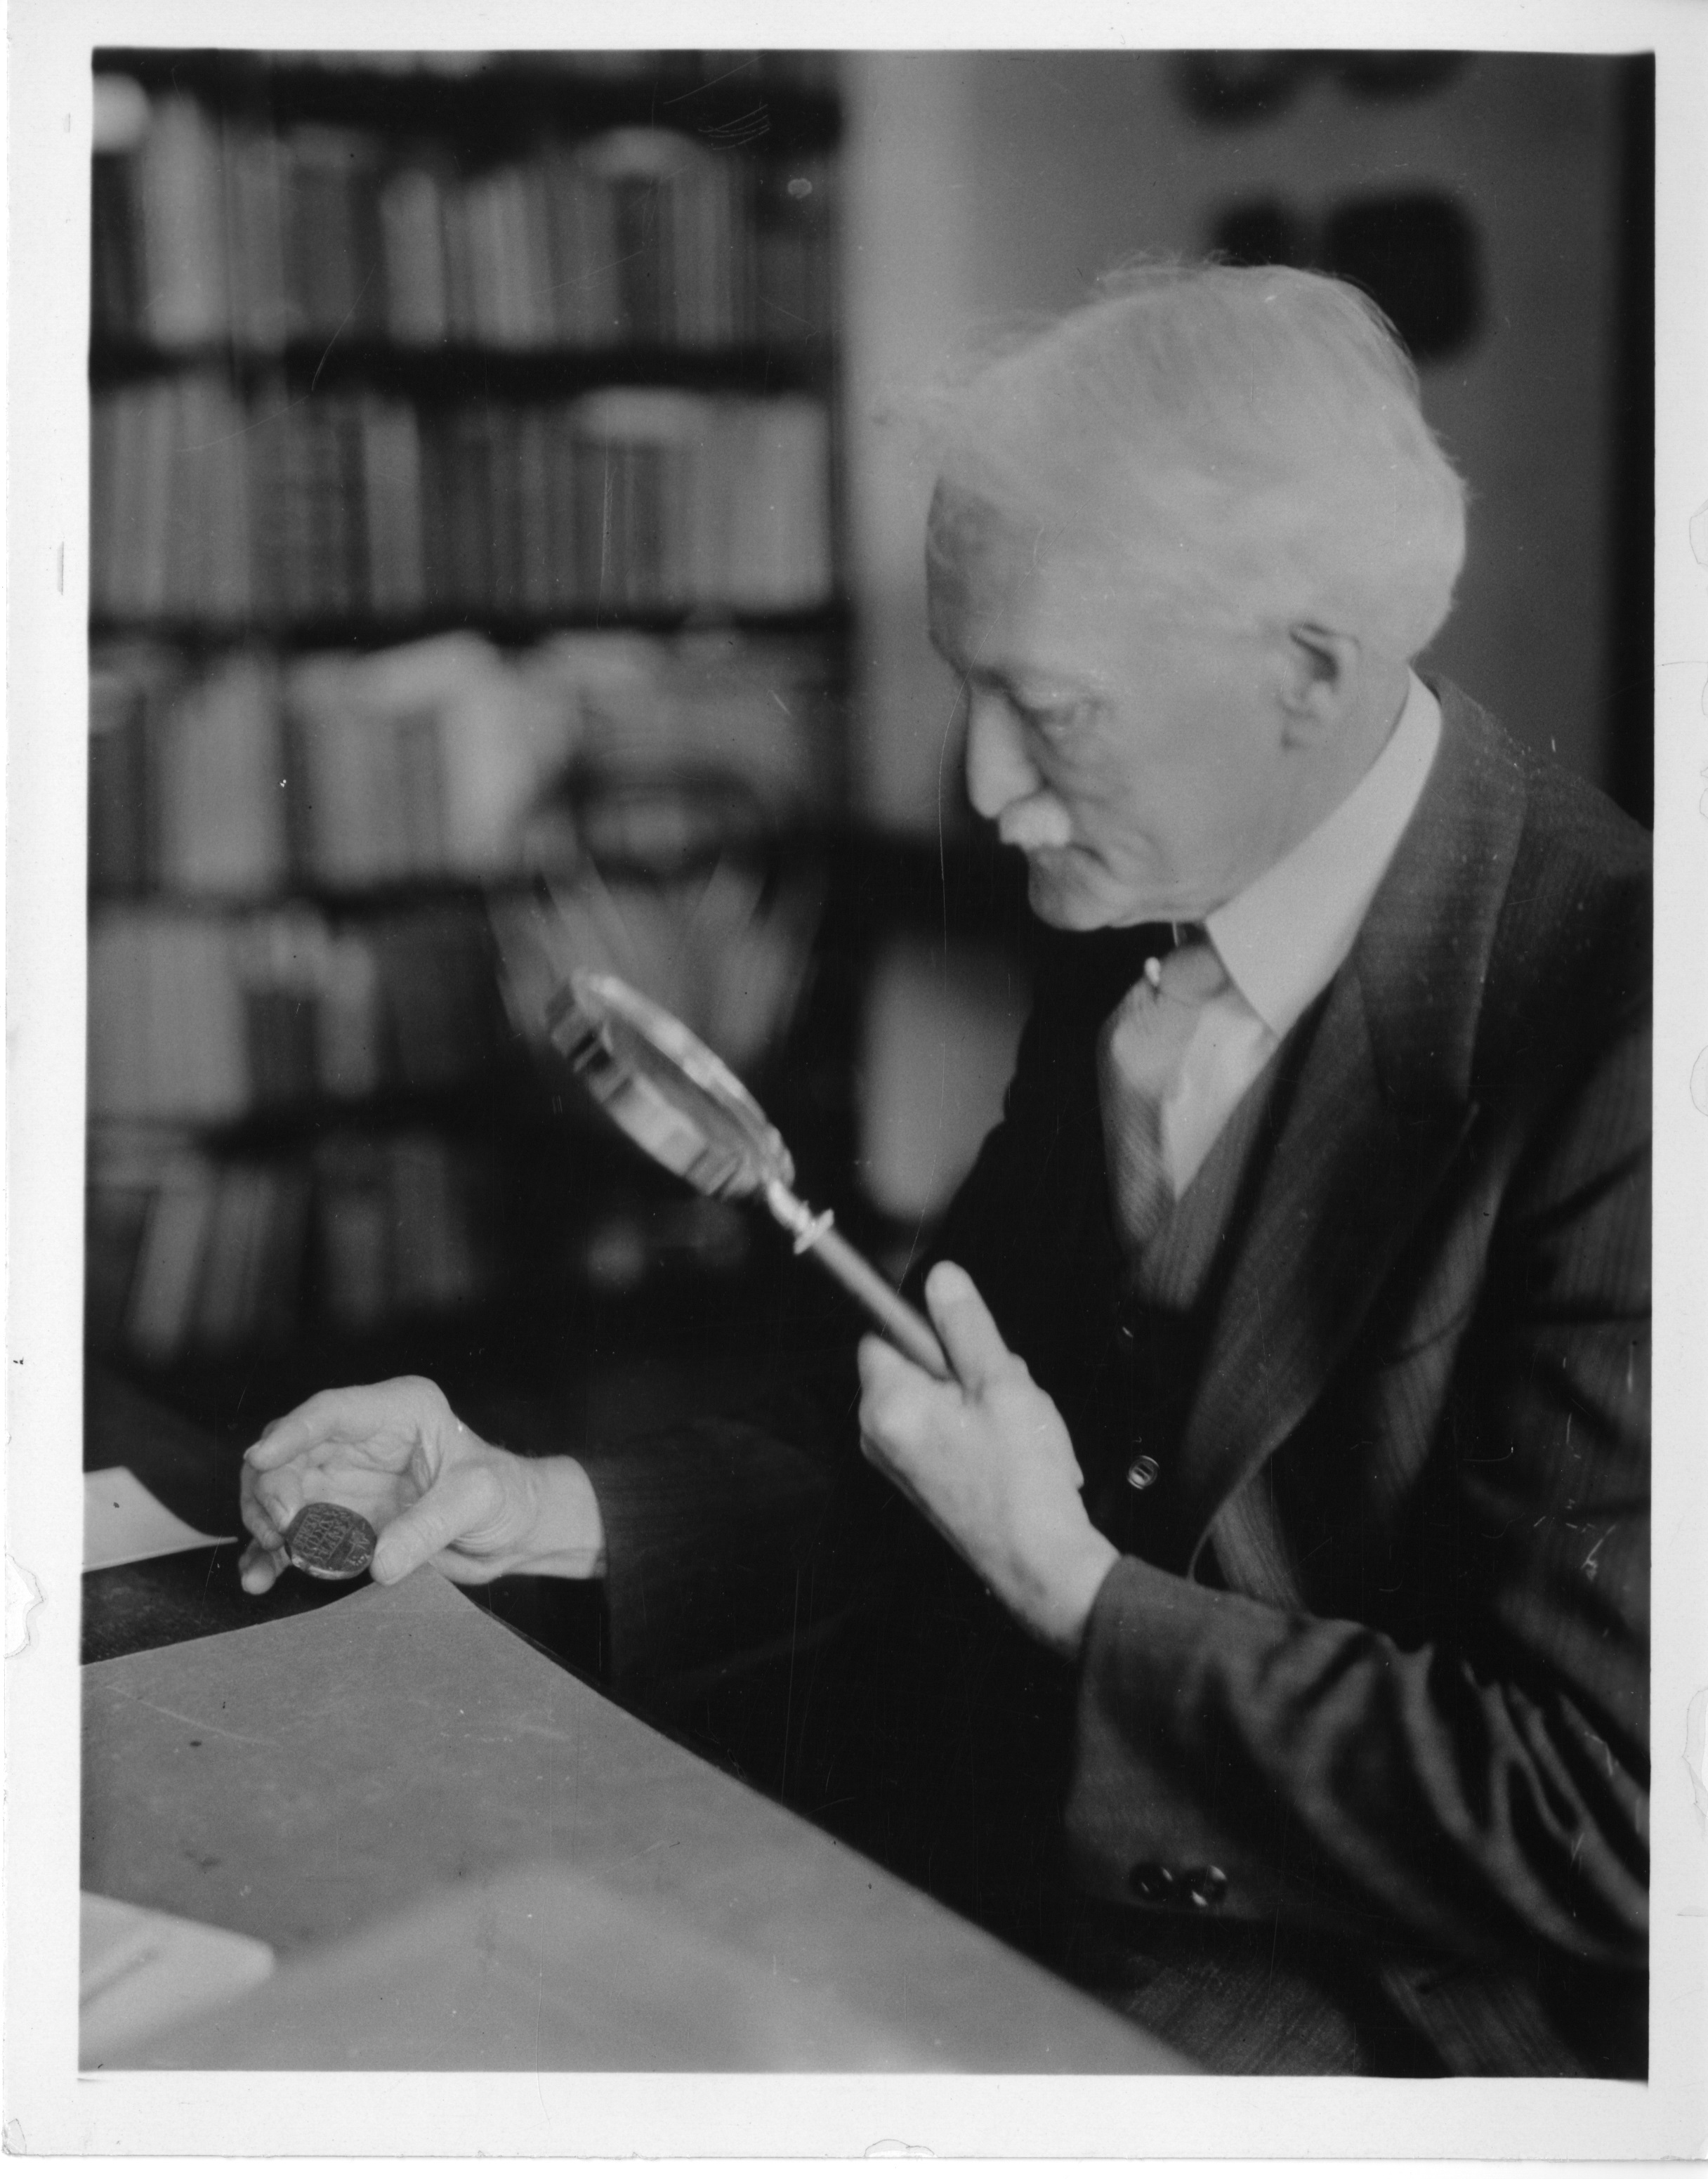 Walter Hough, anthropologist and ethnologist, holding coin in hand and looking at it through a magni